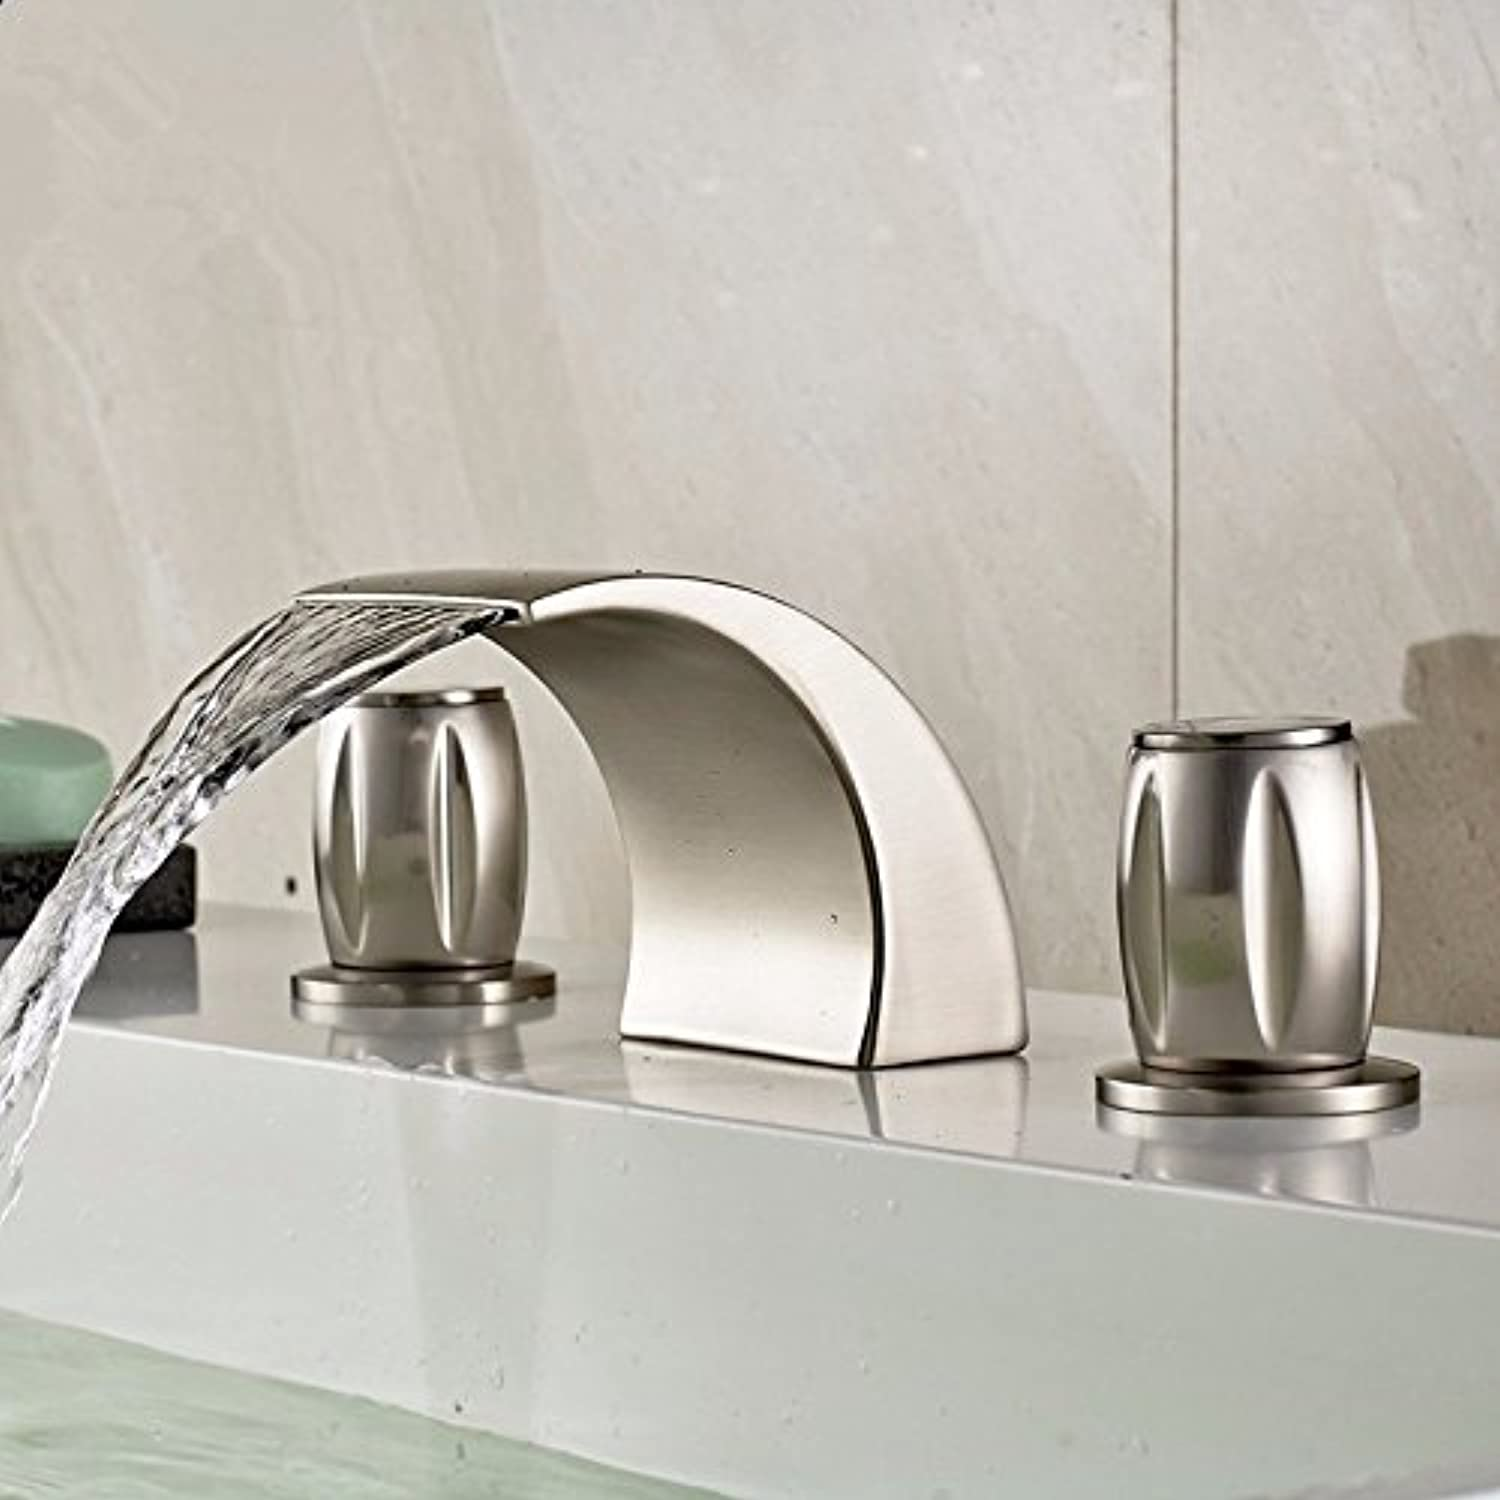 LHbox Basin Mixer Tap Bathroom Sink Faucet Split brushed basin faucet 3-hole hot and cold basin waterfall faucet,B1 without light